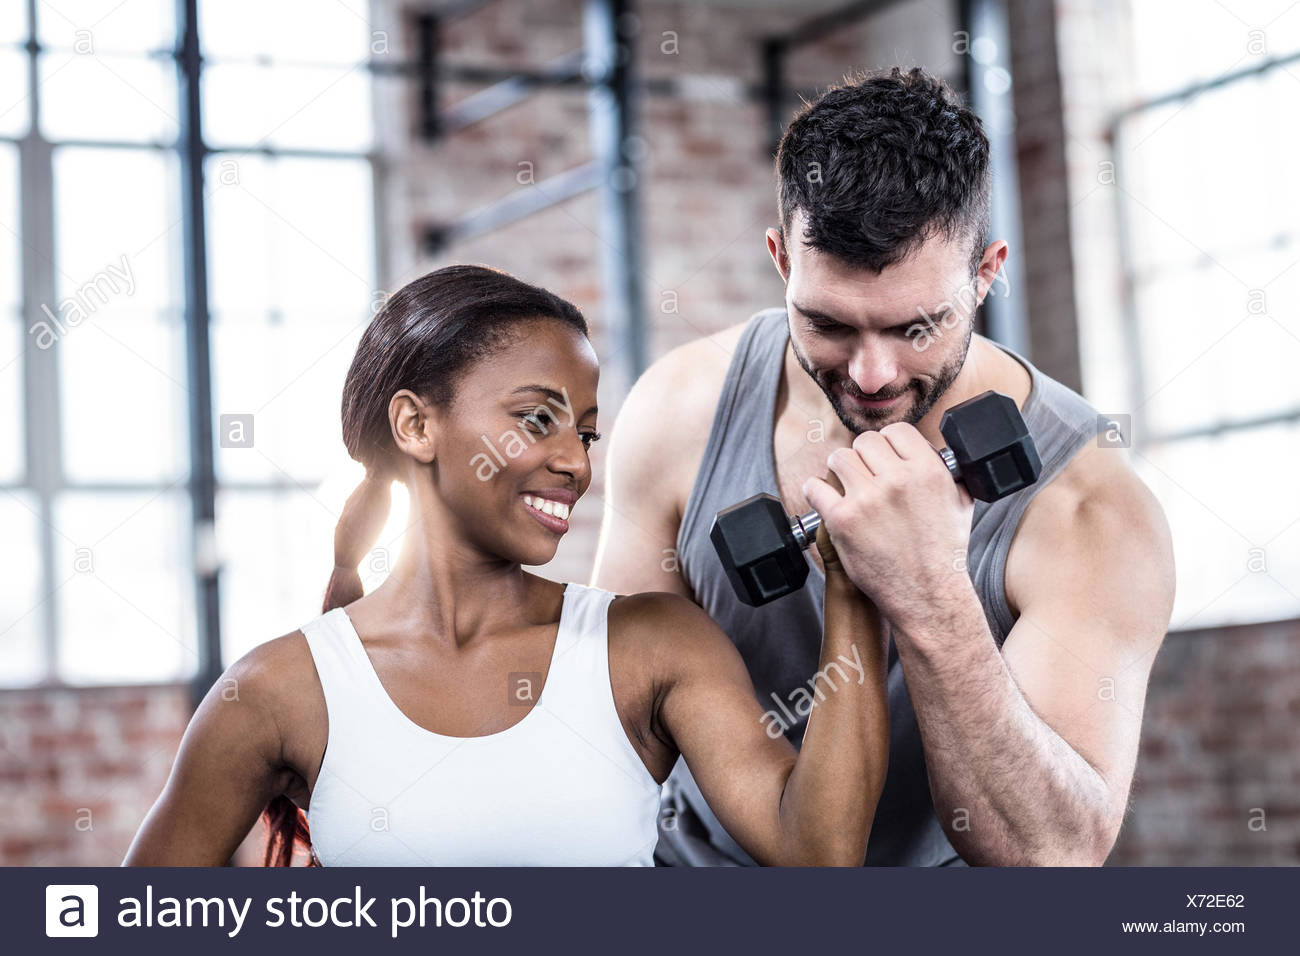 Personal trainer working with client holding dumbbell Stock Photo